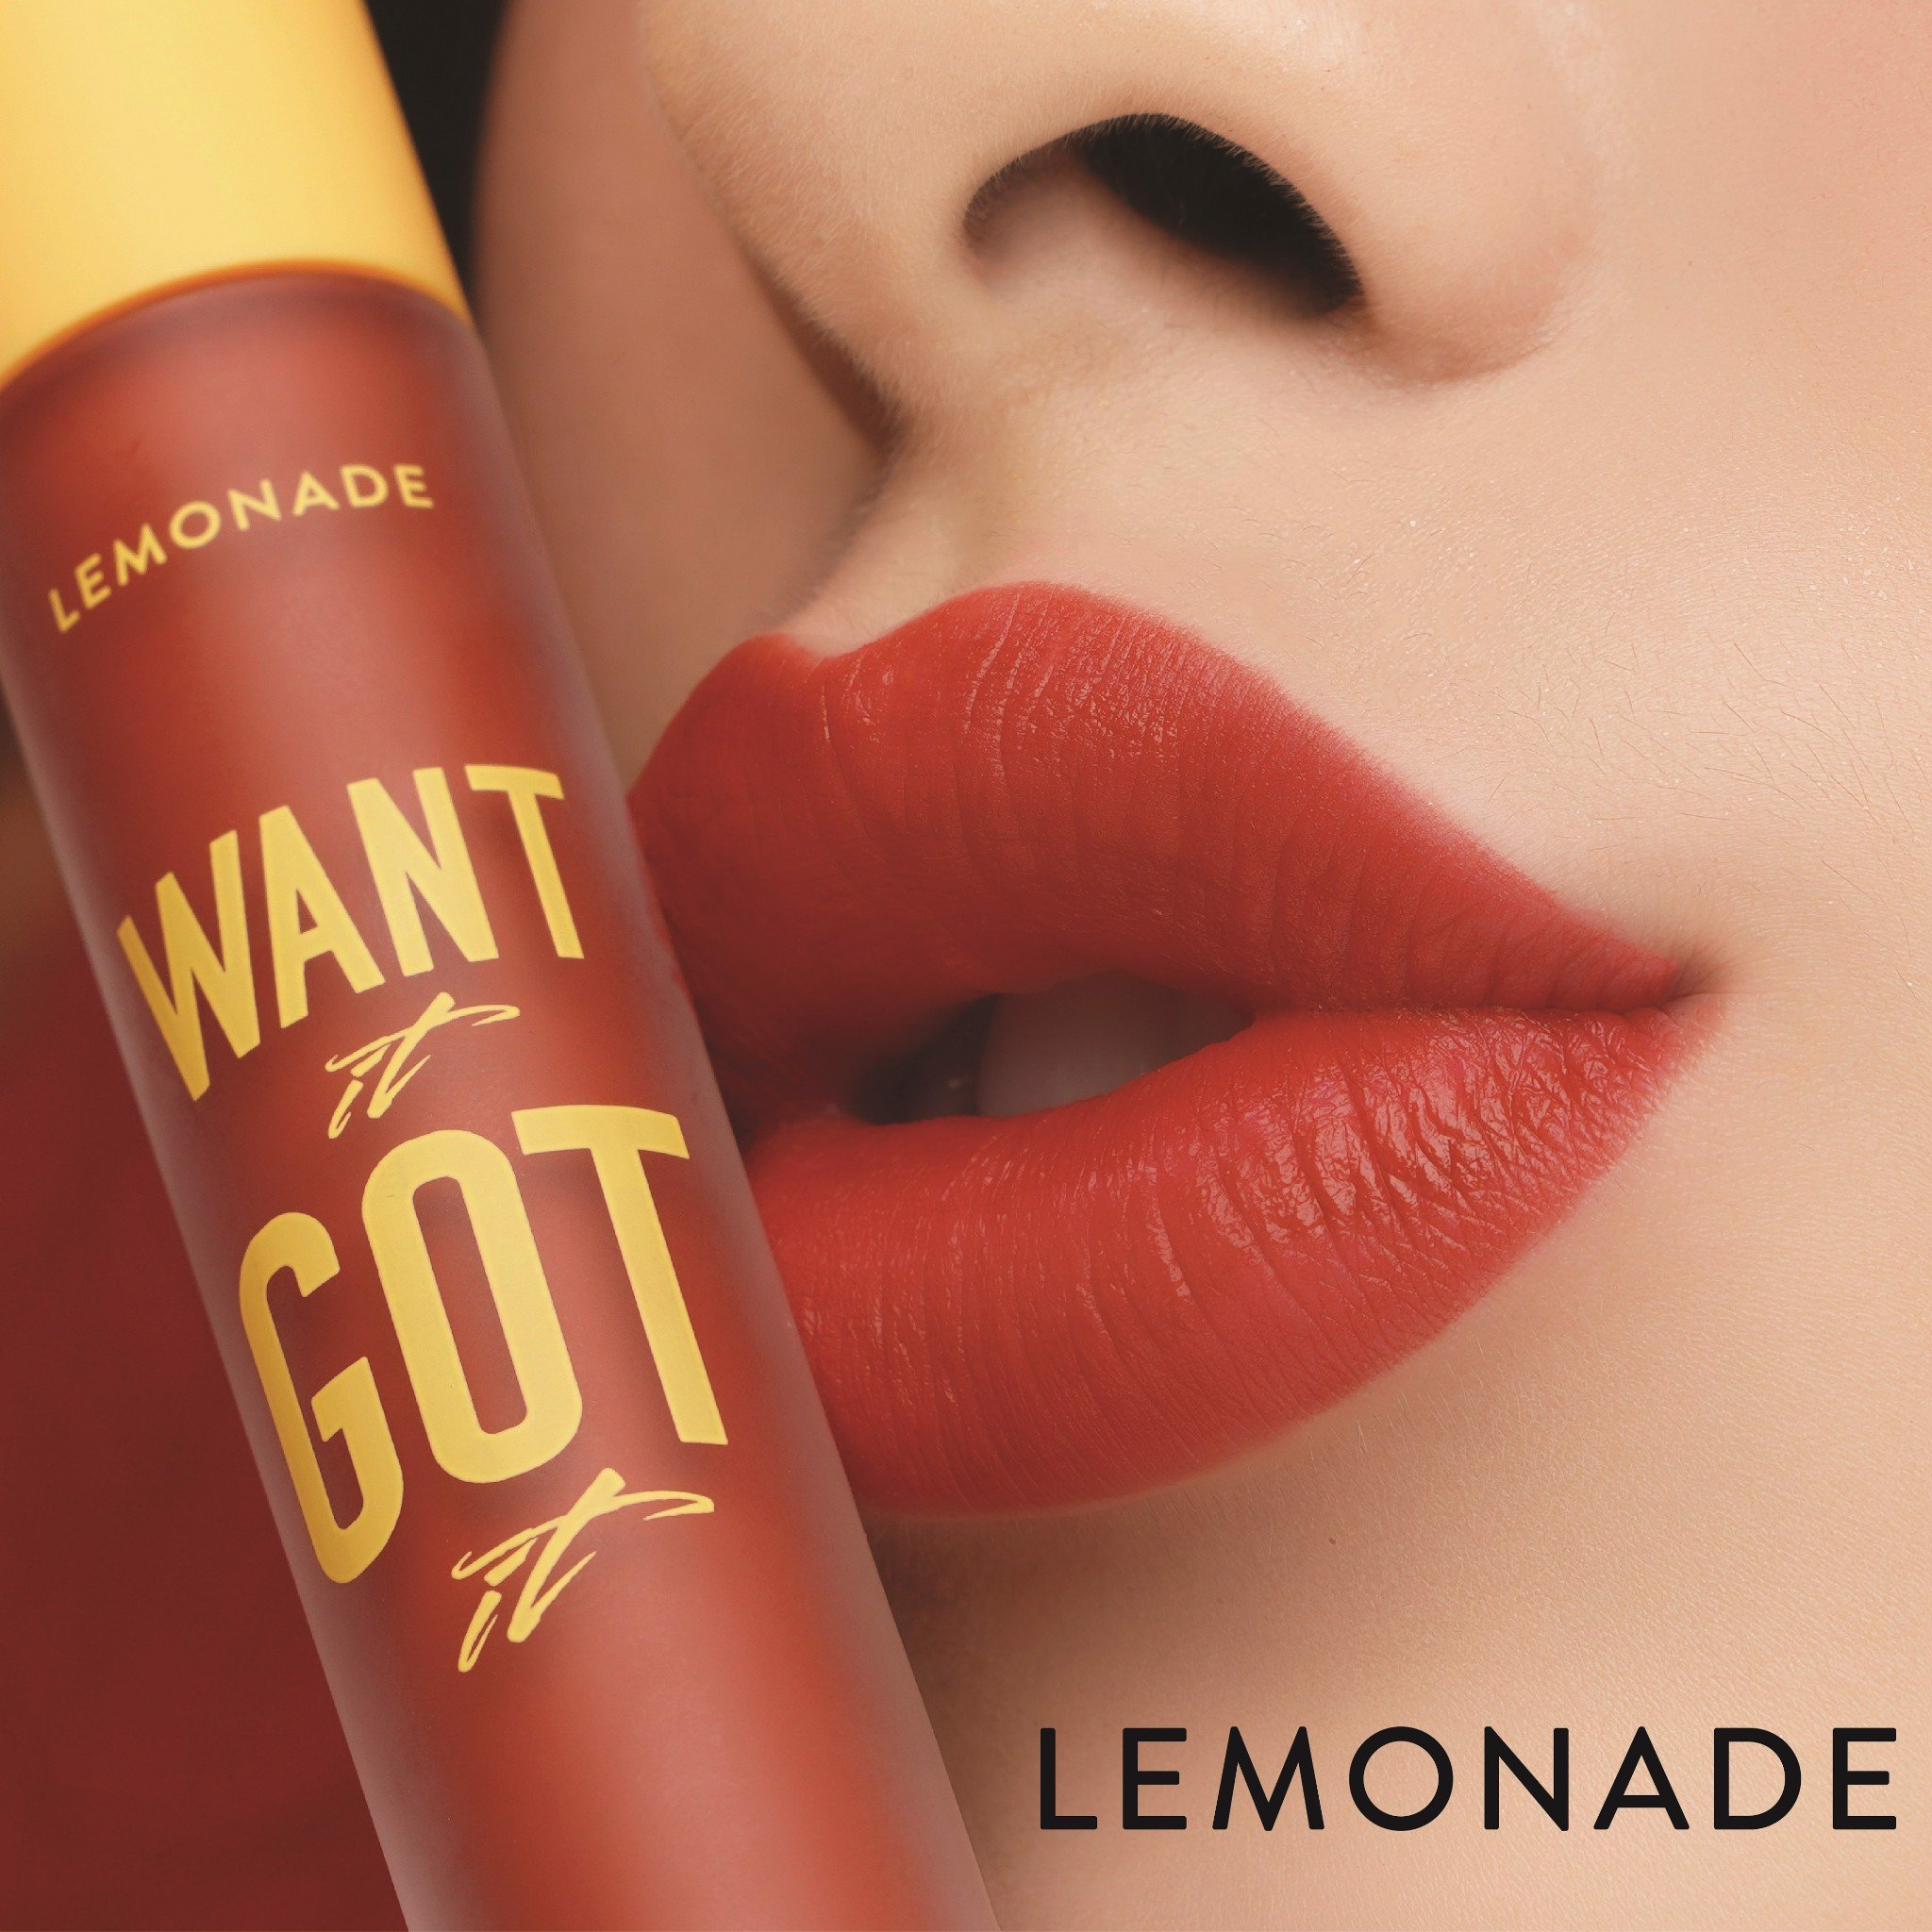 #IWANT01 ĐỎ ĐẤT LEMONADE WANT IT GOT IT LIPCREAM